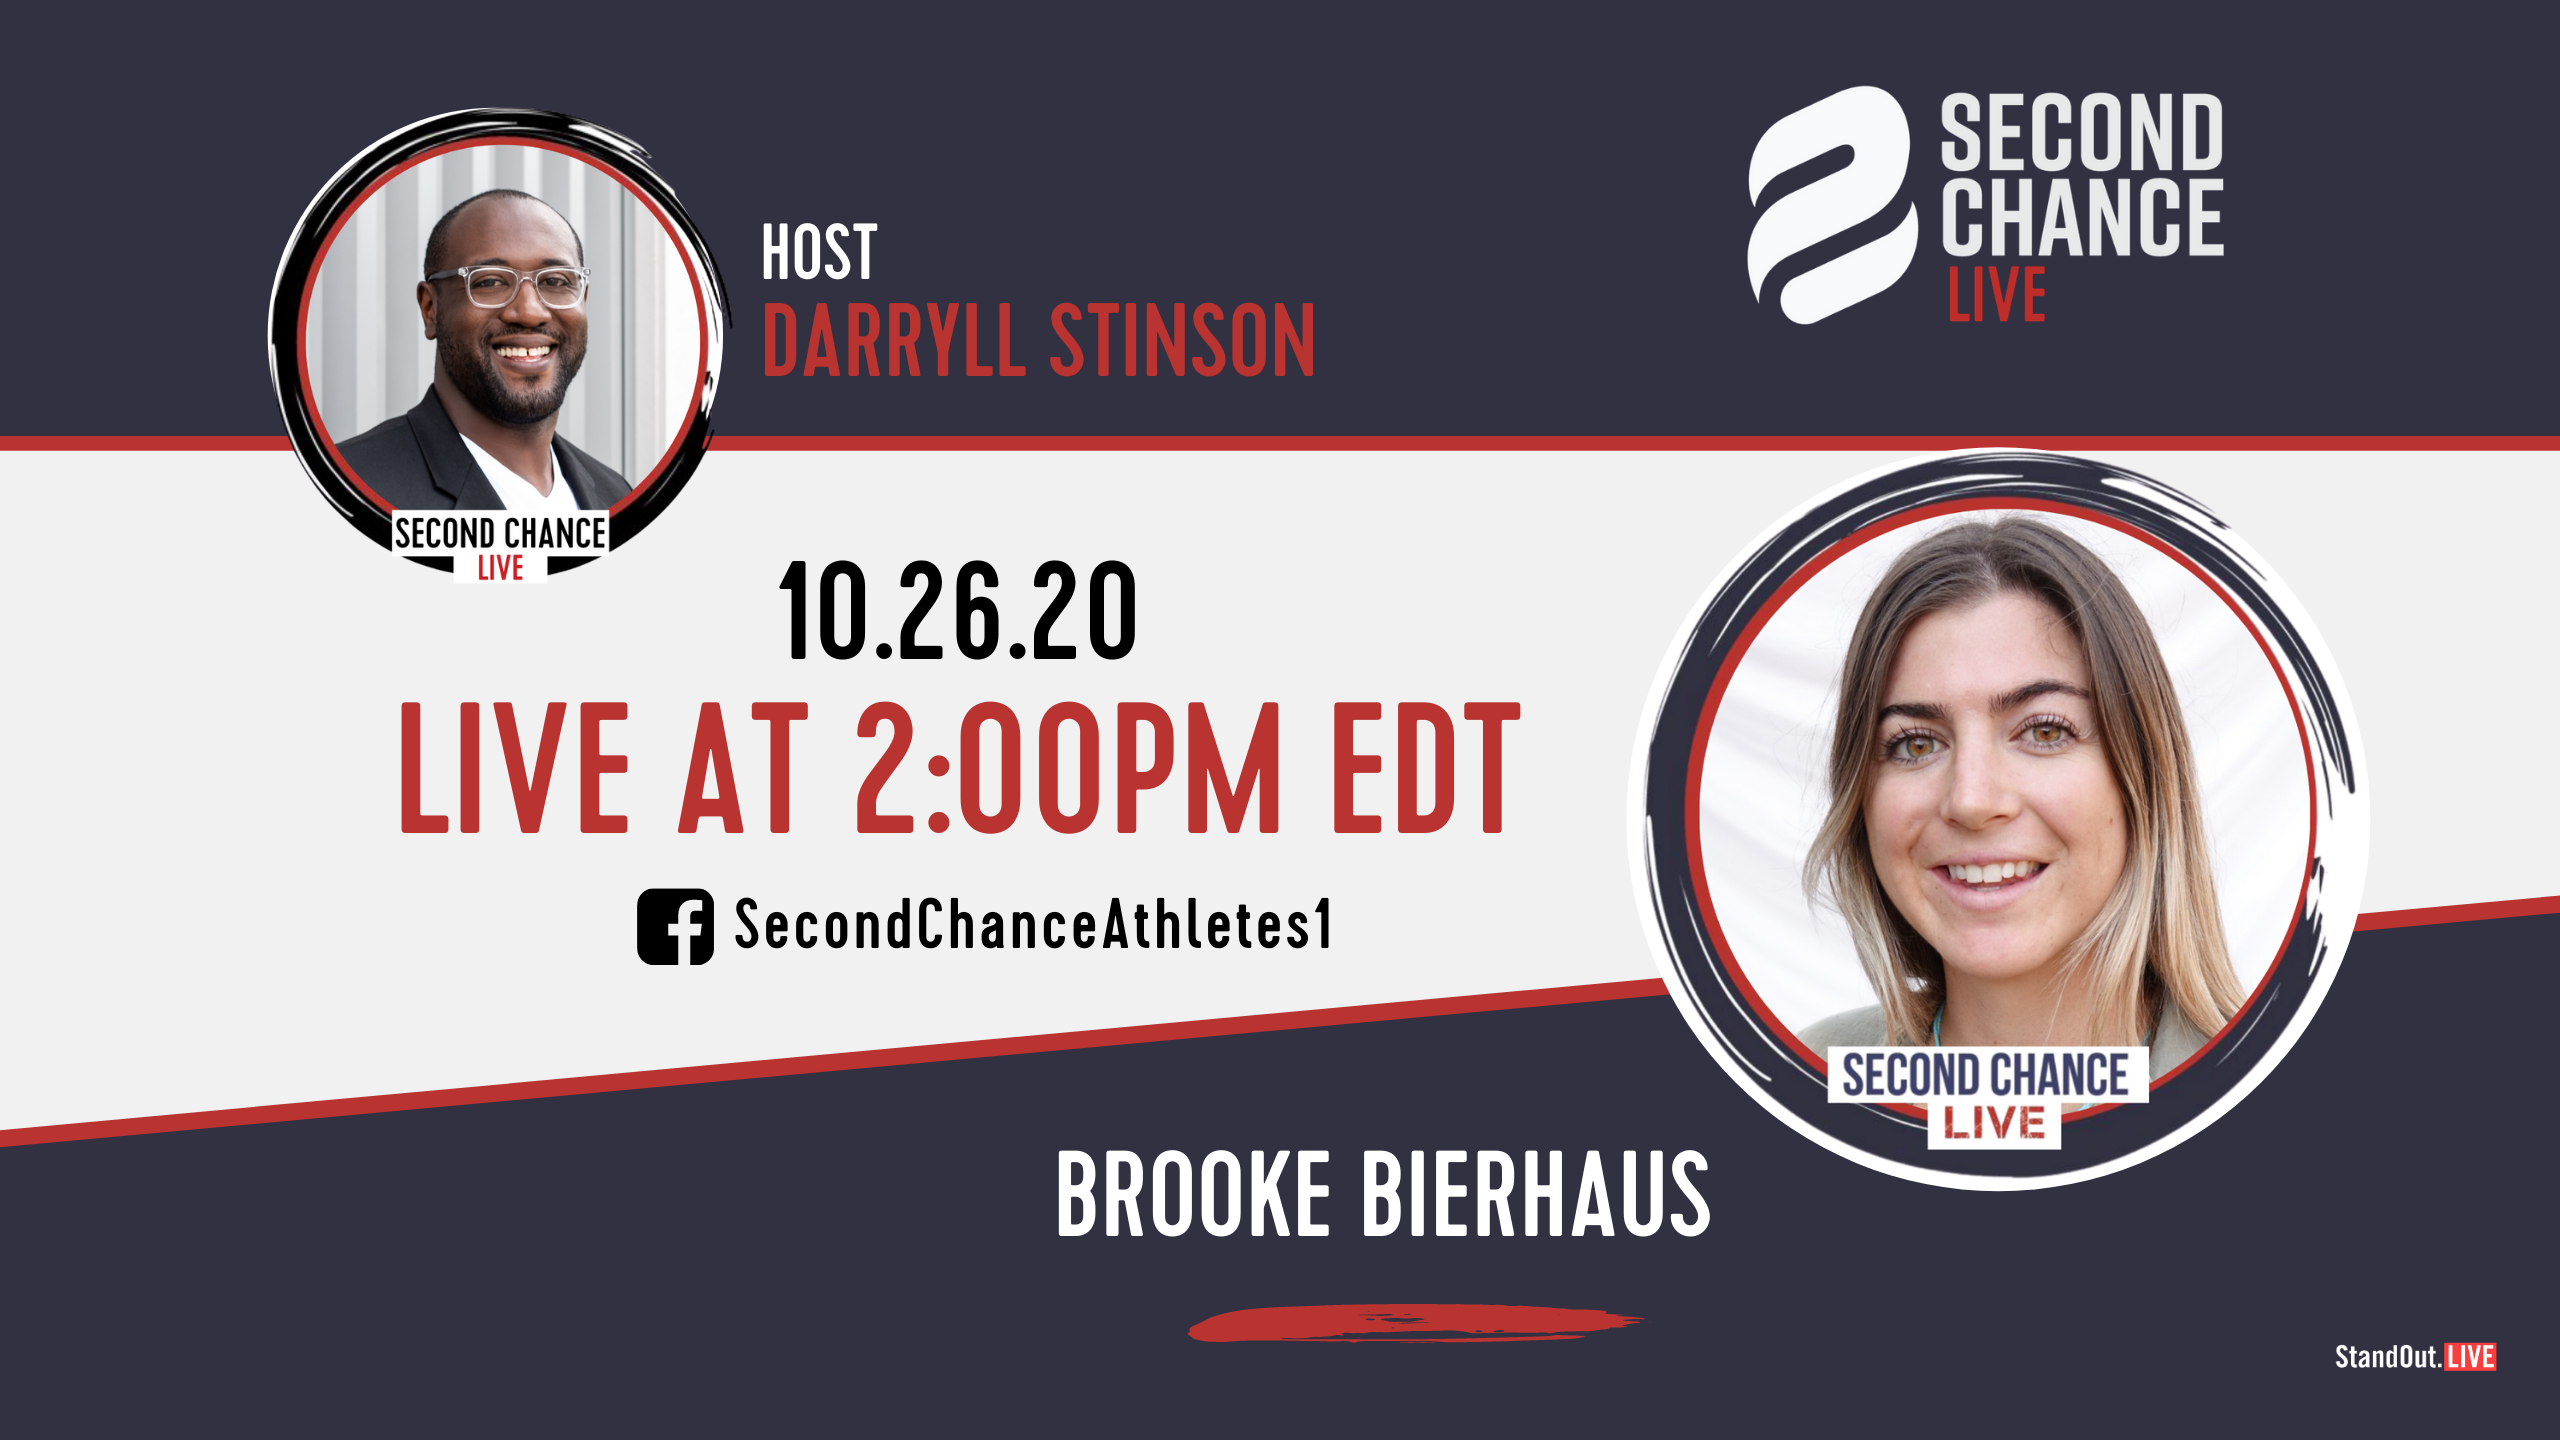 Second Chance LIVE -with Brooke Bierhaus